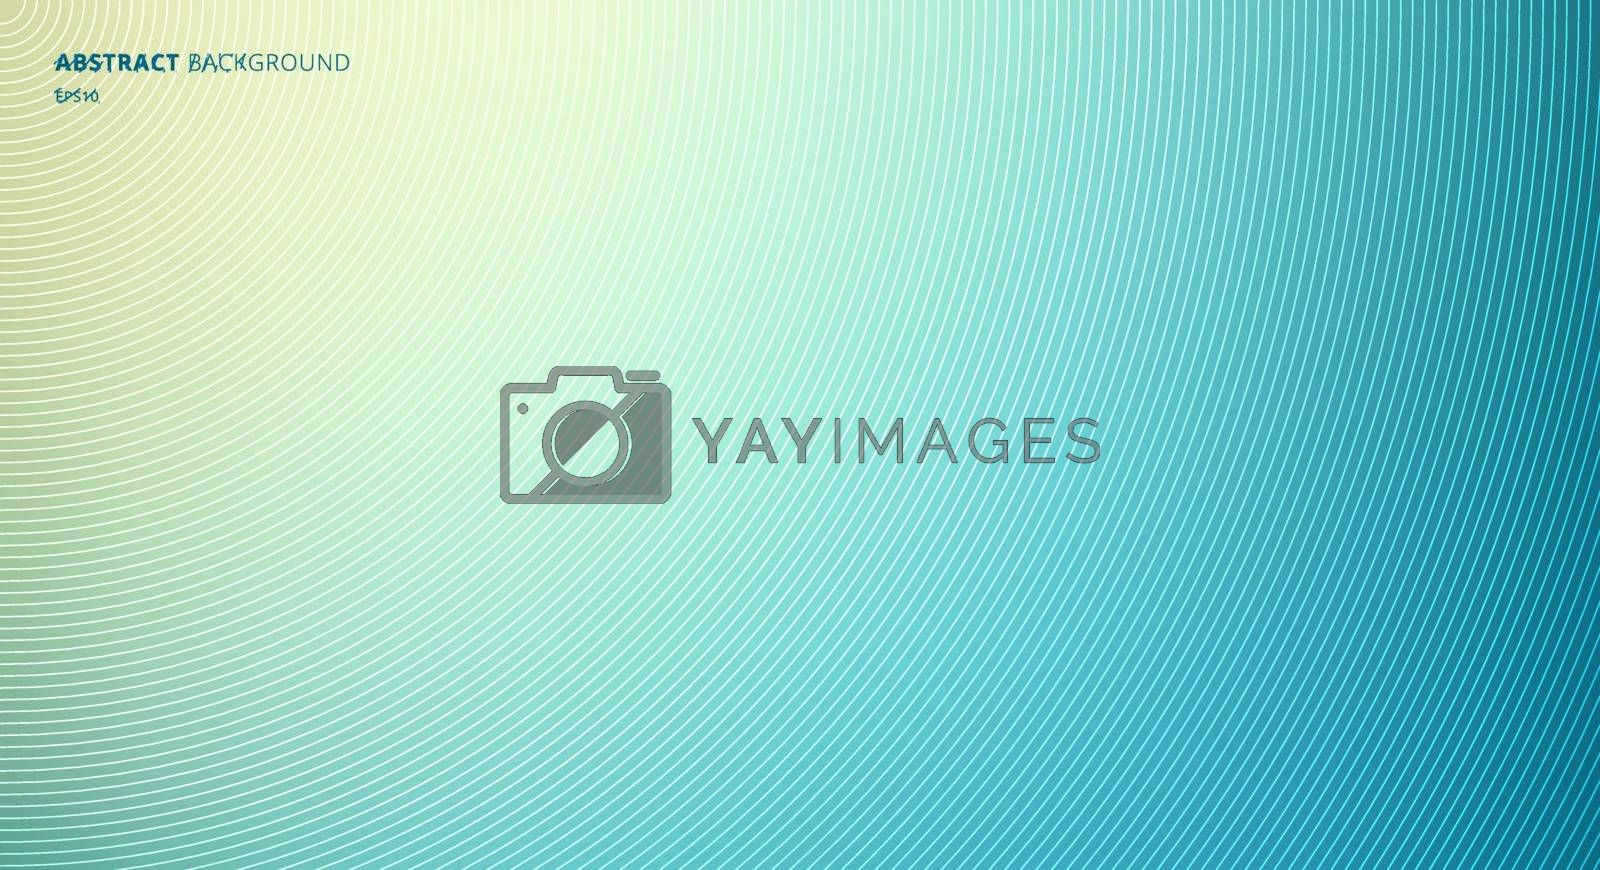 Abstract Blue Blurred Background with Circles Radial Texture. Vector Illustration